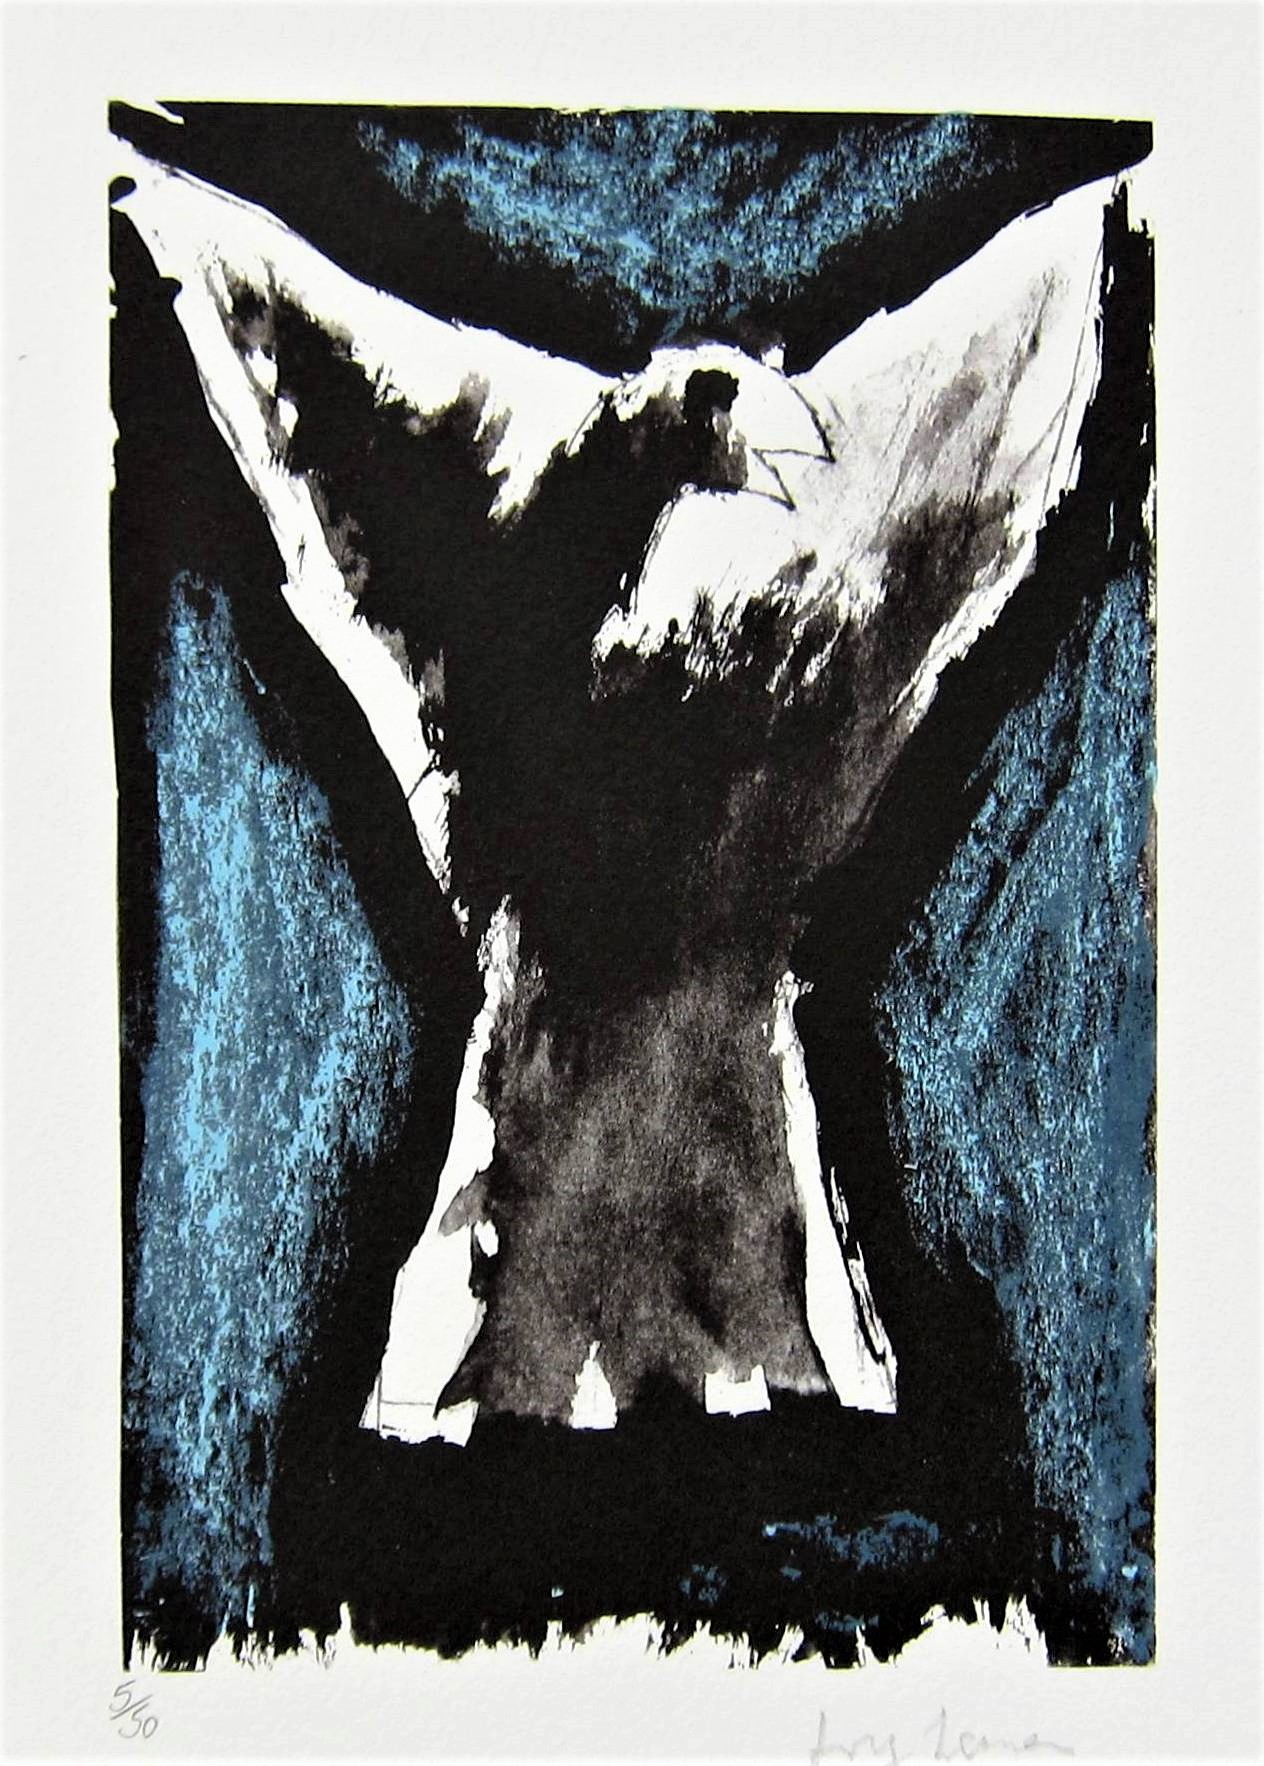 JOSEF HERMAN, R.A. [1911-2000]. Bird [Objects.], 1999. lithograph, edition of 50; 5/50 - signed in